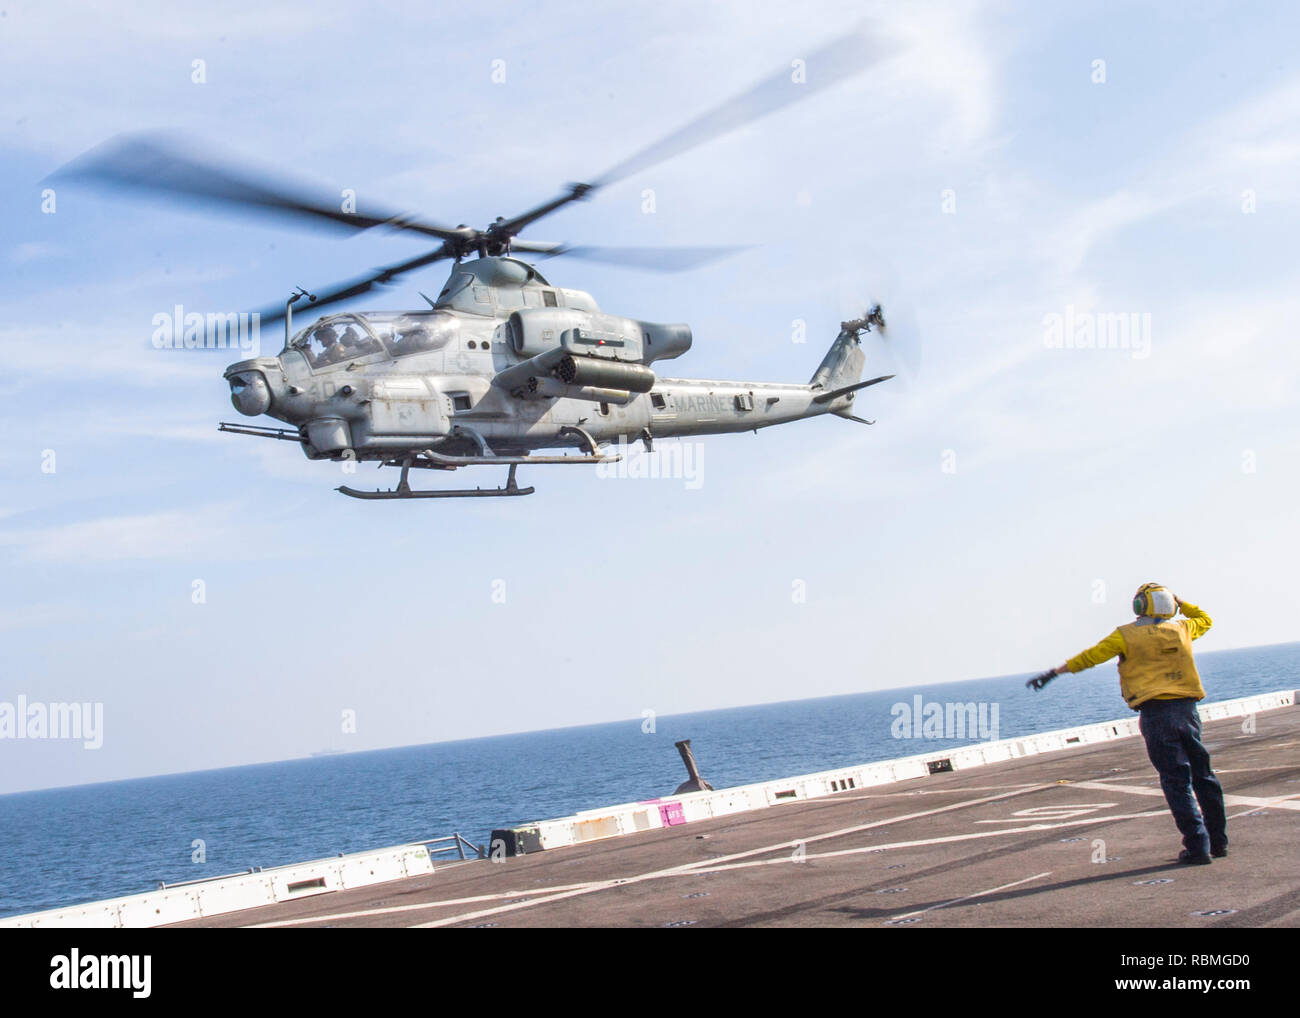 190102-N-PH222-1083 ARABIAN SEA (Jan. 2, 2018) Aviation Boatswain's Mate (Handling) Airman Eddie De La Cruz, from Garden Grove, Calif., salutes a AH–1Z Viper helicopter, attached to Marine Medium Tiltrotor Squadron (VMM) 166 (Reinforced), from the flight deck of the San Antonio-class amphibious transport dock ship USS Anchorage (LPD 23) while on a deployment of the Essex Amphibious Ready Group (ARG) and 13th Marine Expeditionary Unit (MEU). The Essex ARG/13th MEU is flexible and persistent Navy-Marine Corps team deployed to the U.S. 5th Fleet area of operations in support of naval operations t - Stock Image